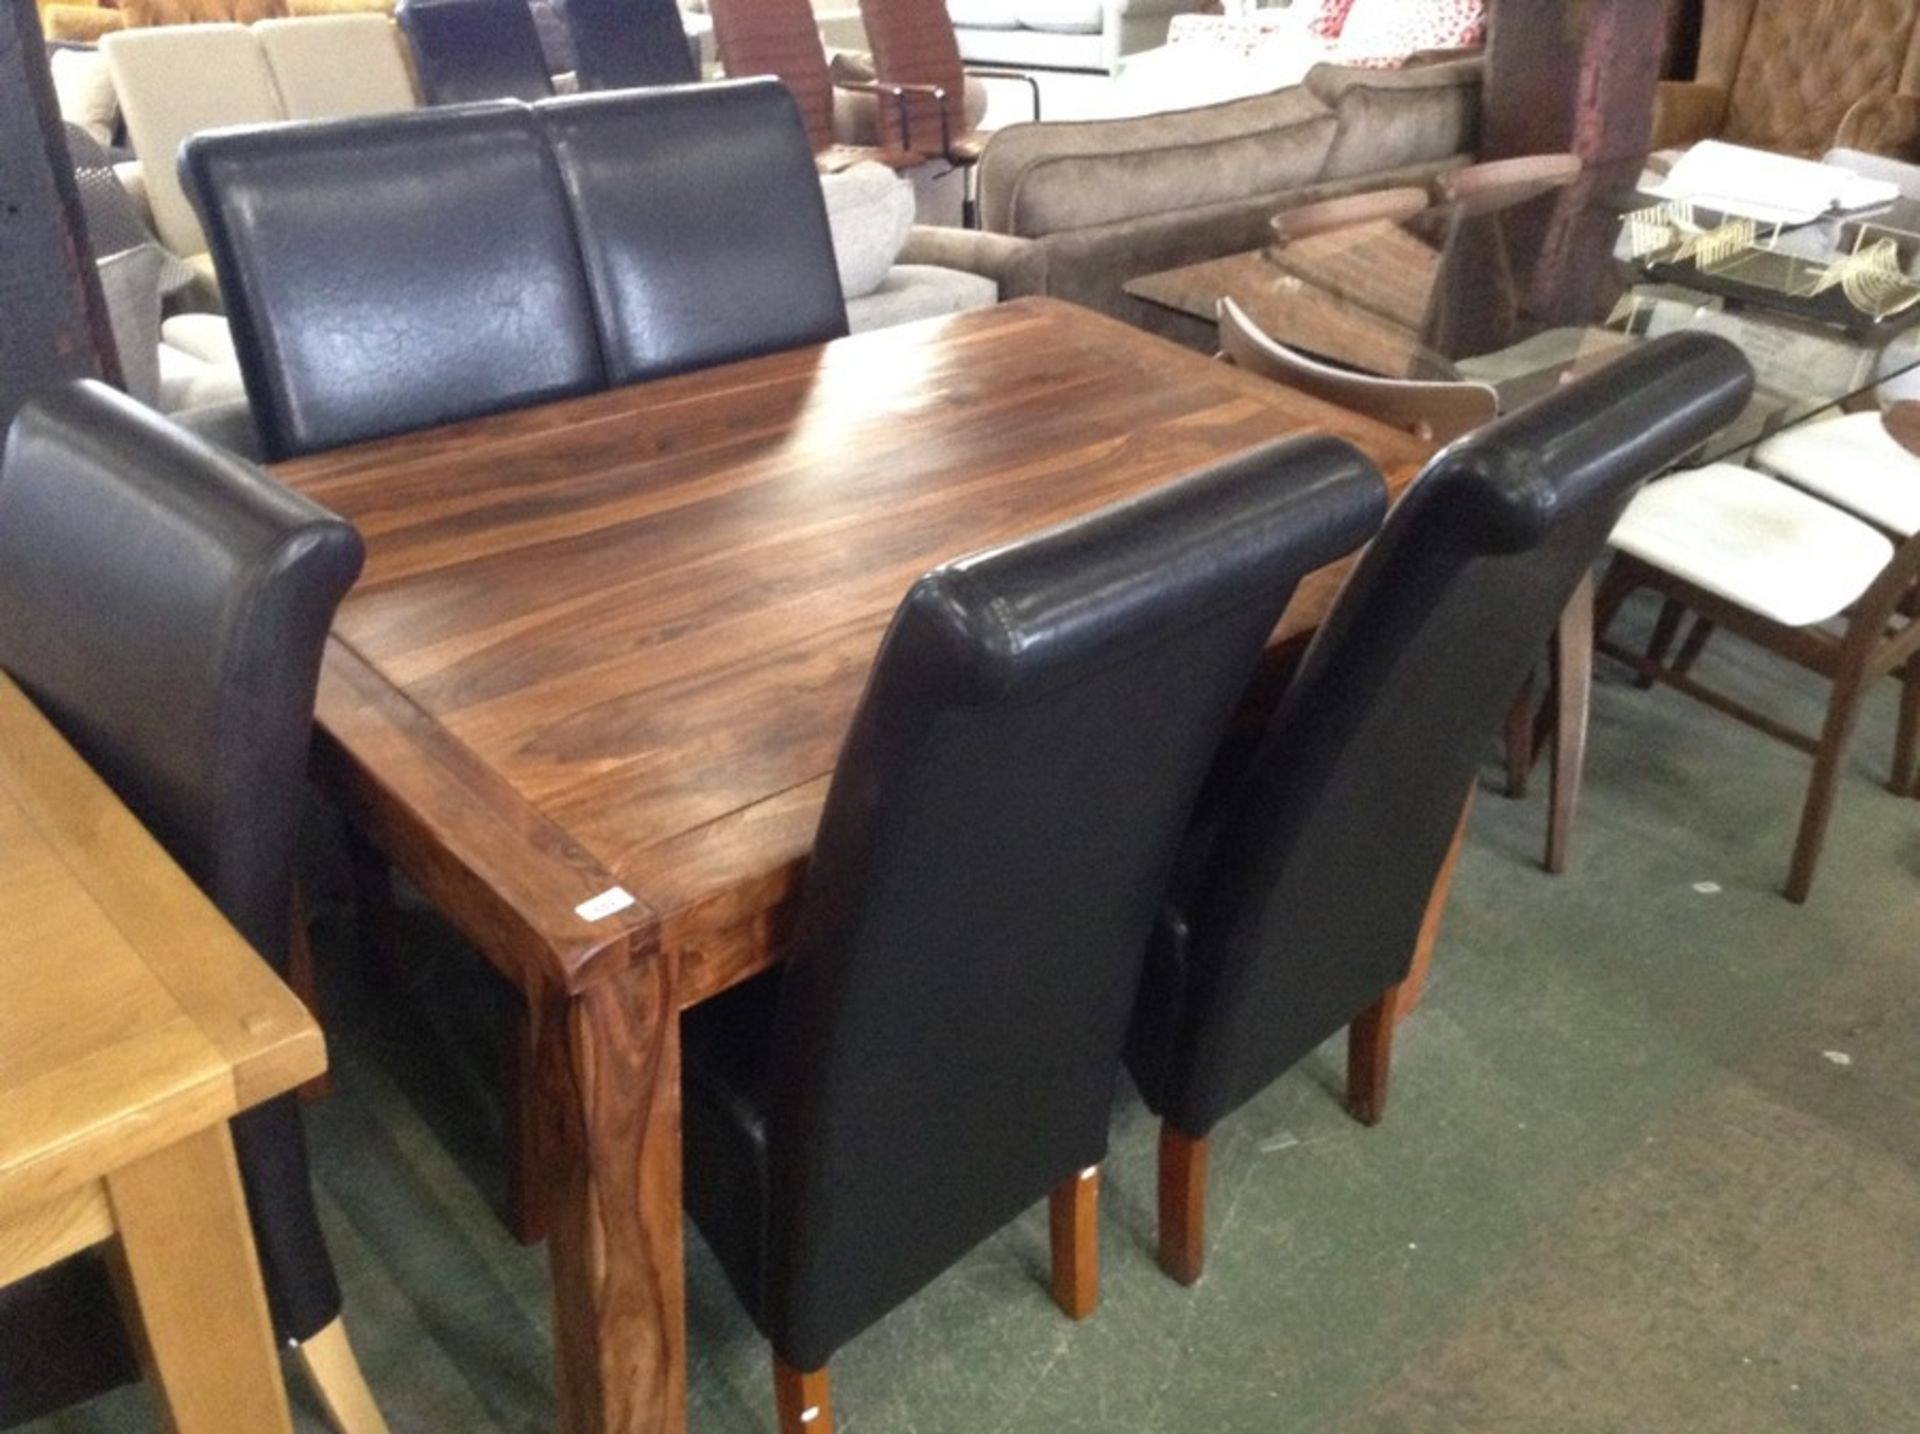 Lot 137 - ETHNIC TABLE AND 4 CHAIRS